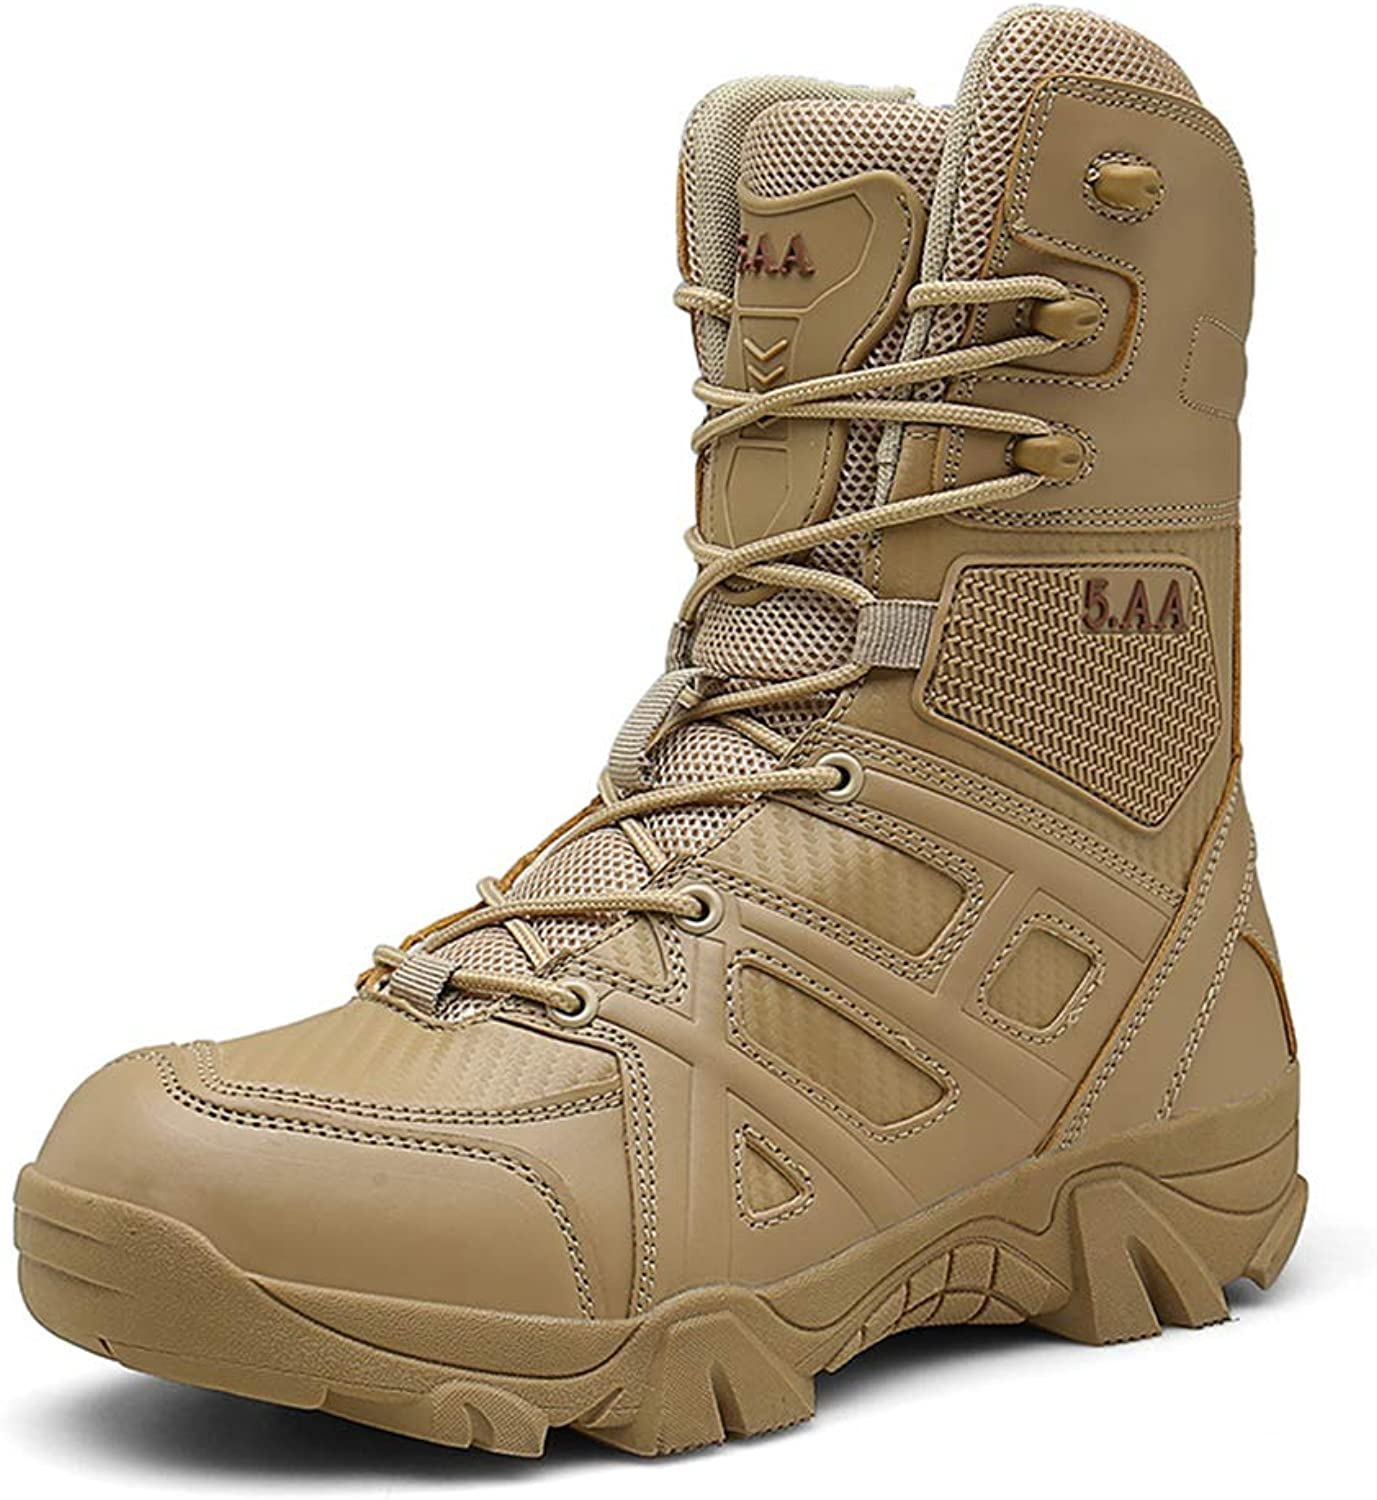 Suetar Men's mid-top Military Hiking and Trekking Boots Autumn and Winter Waterproof Non-Slip Tactical Boots for Men Fashion Combat Boots